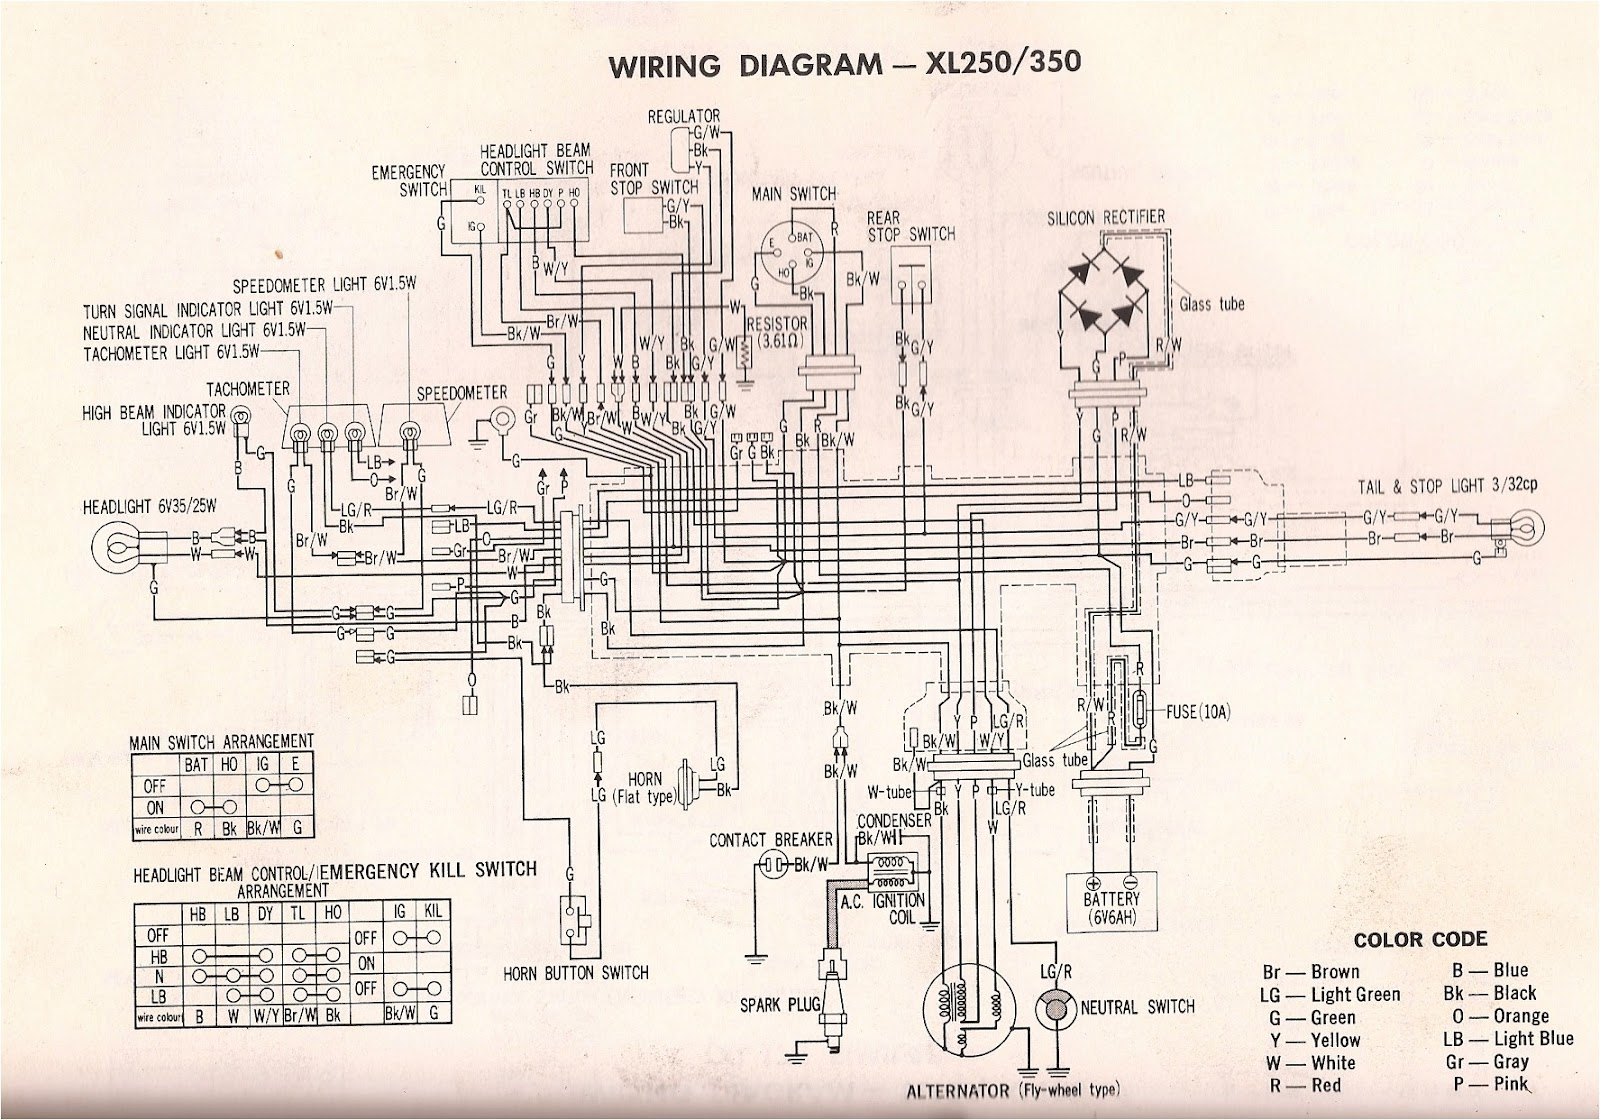 XL350+Wiring+diagram+S r4l xl350 wiring diagram (and xl250) 1978 honda cb125s wiring diagrams at suagrazia.org